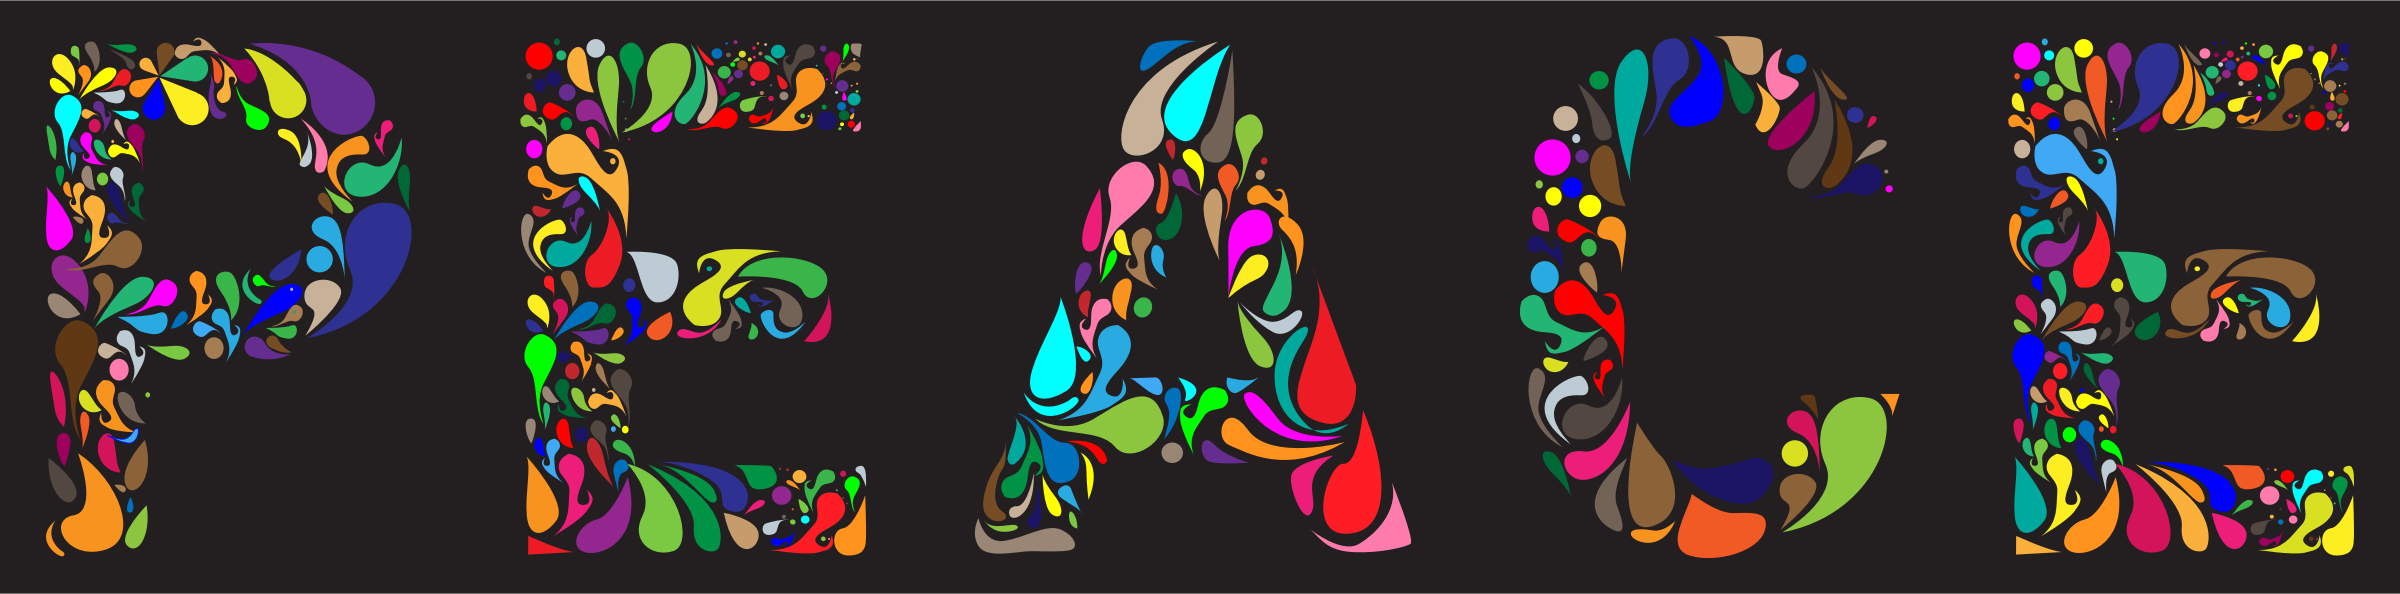 Prismatic Peace Typography by GDJ